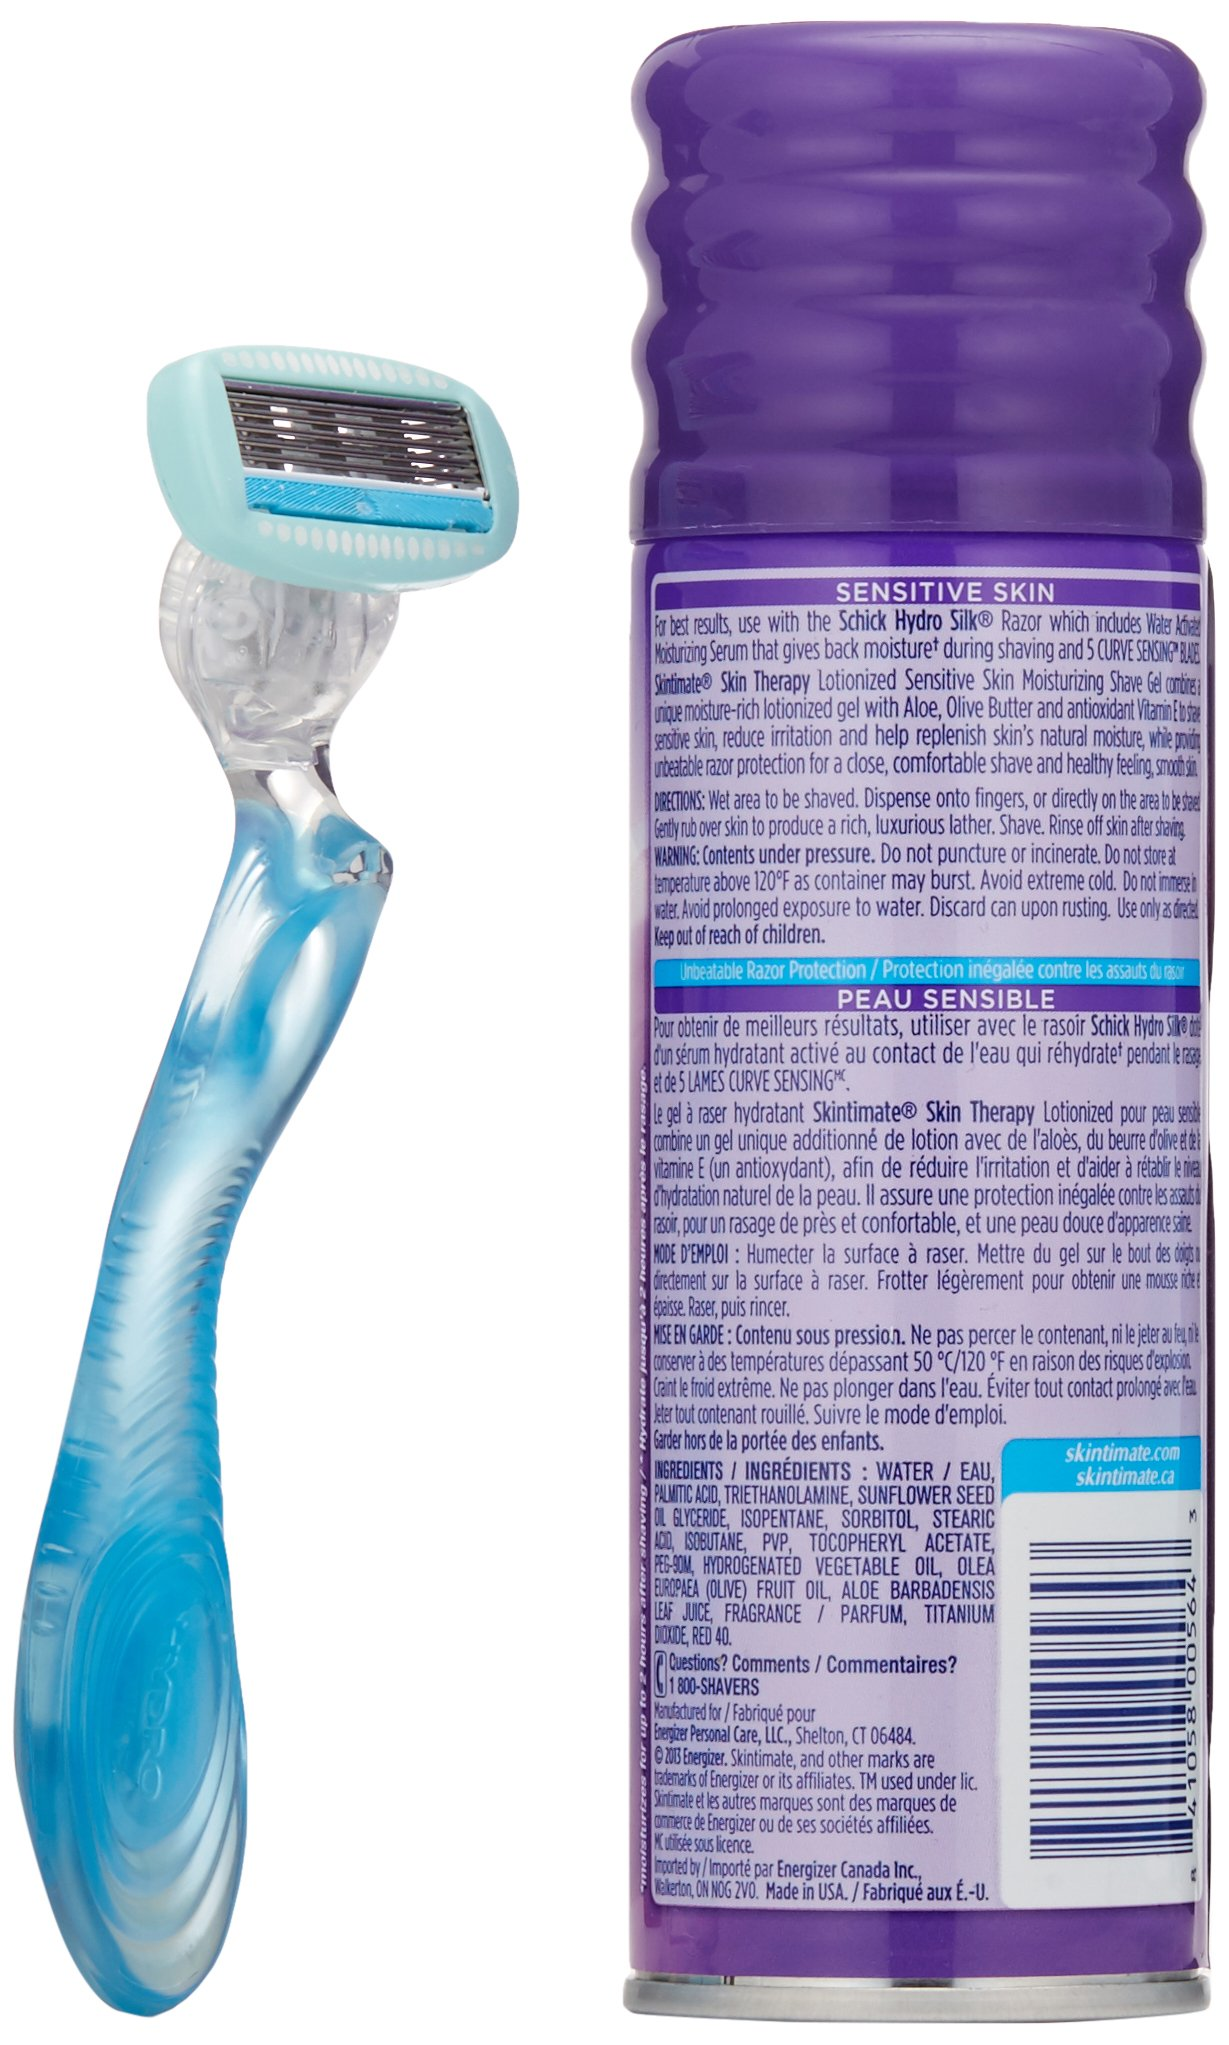 Schick Hydro Silk Shaving Starter Gift Set for Women with Shower Ready Razor Refill Blades and Skintimate Skin Therapy Shave Gel for Sensitive Skin by Schick (Image #3)